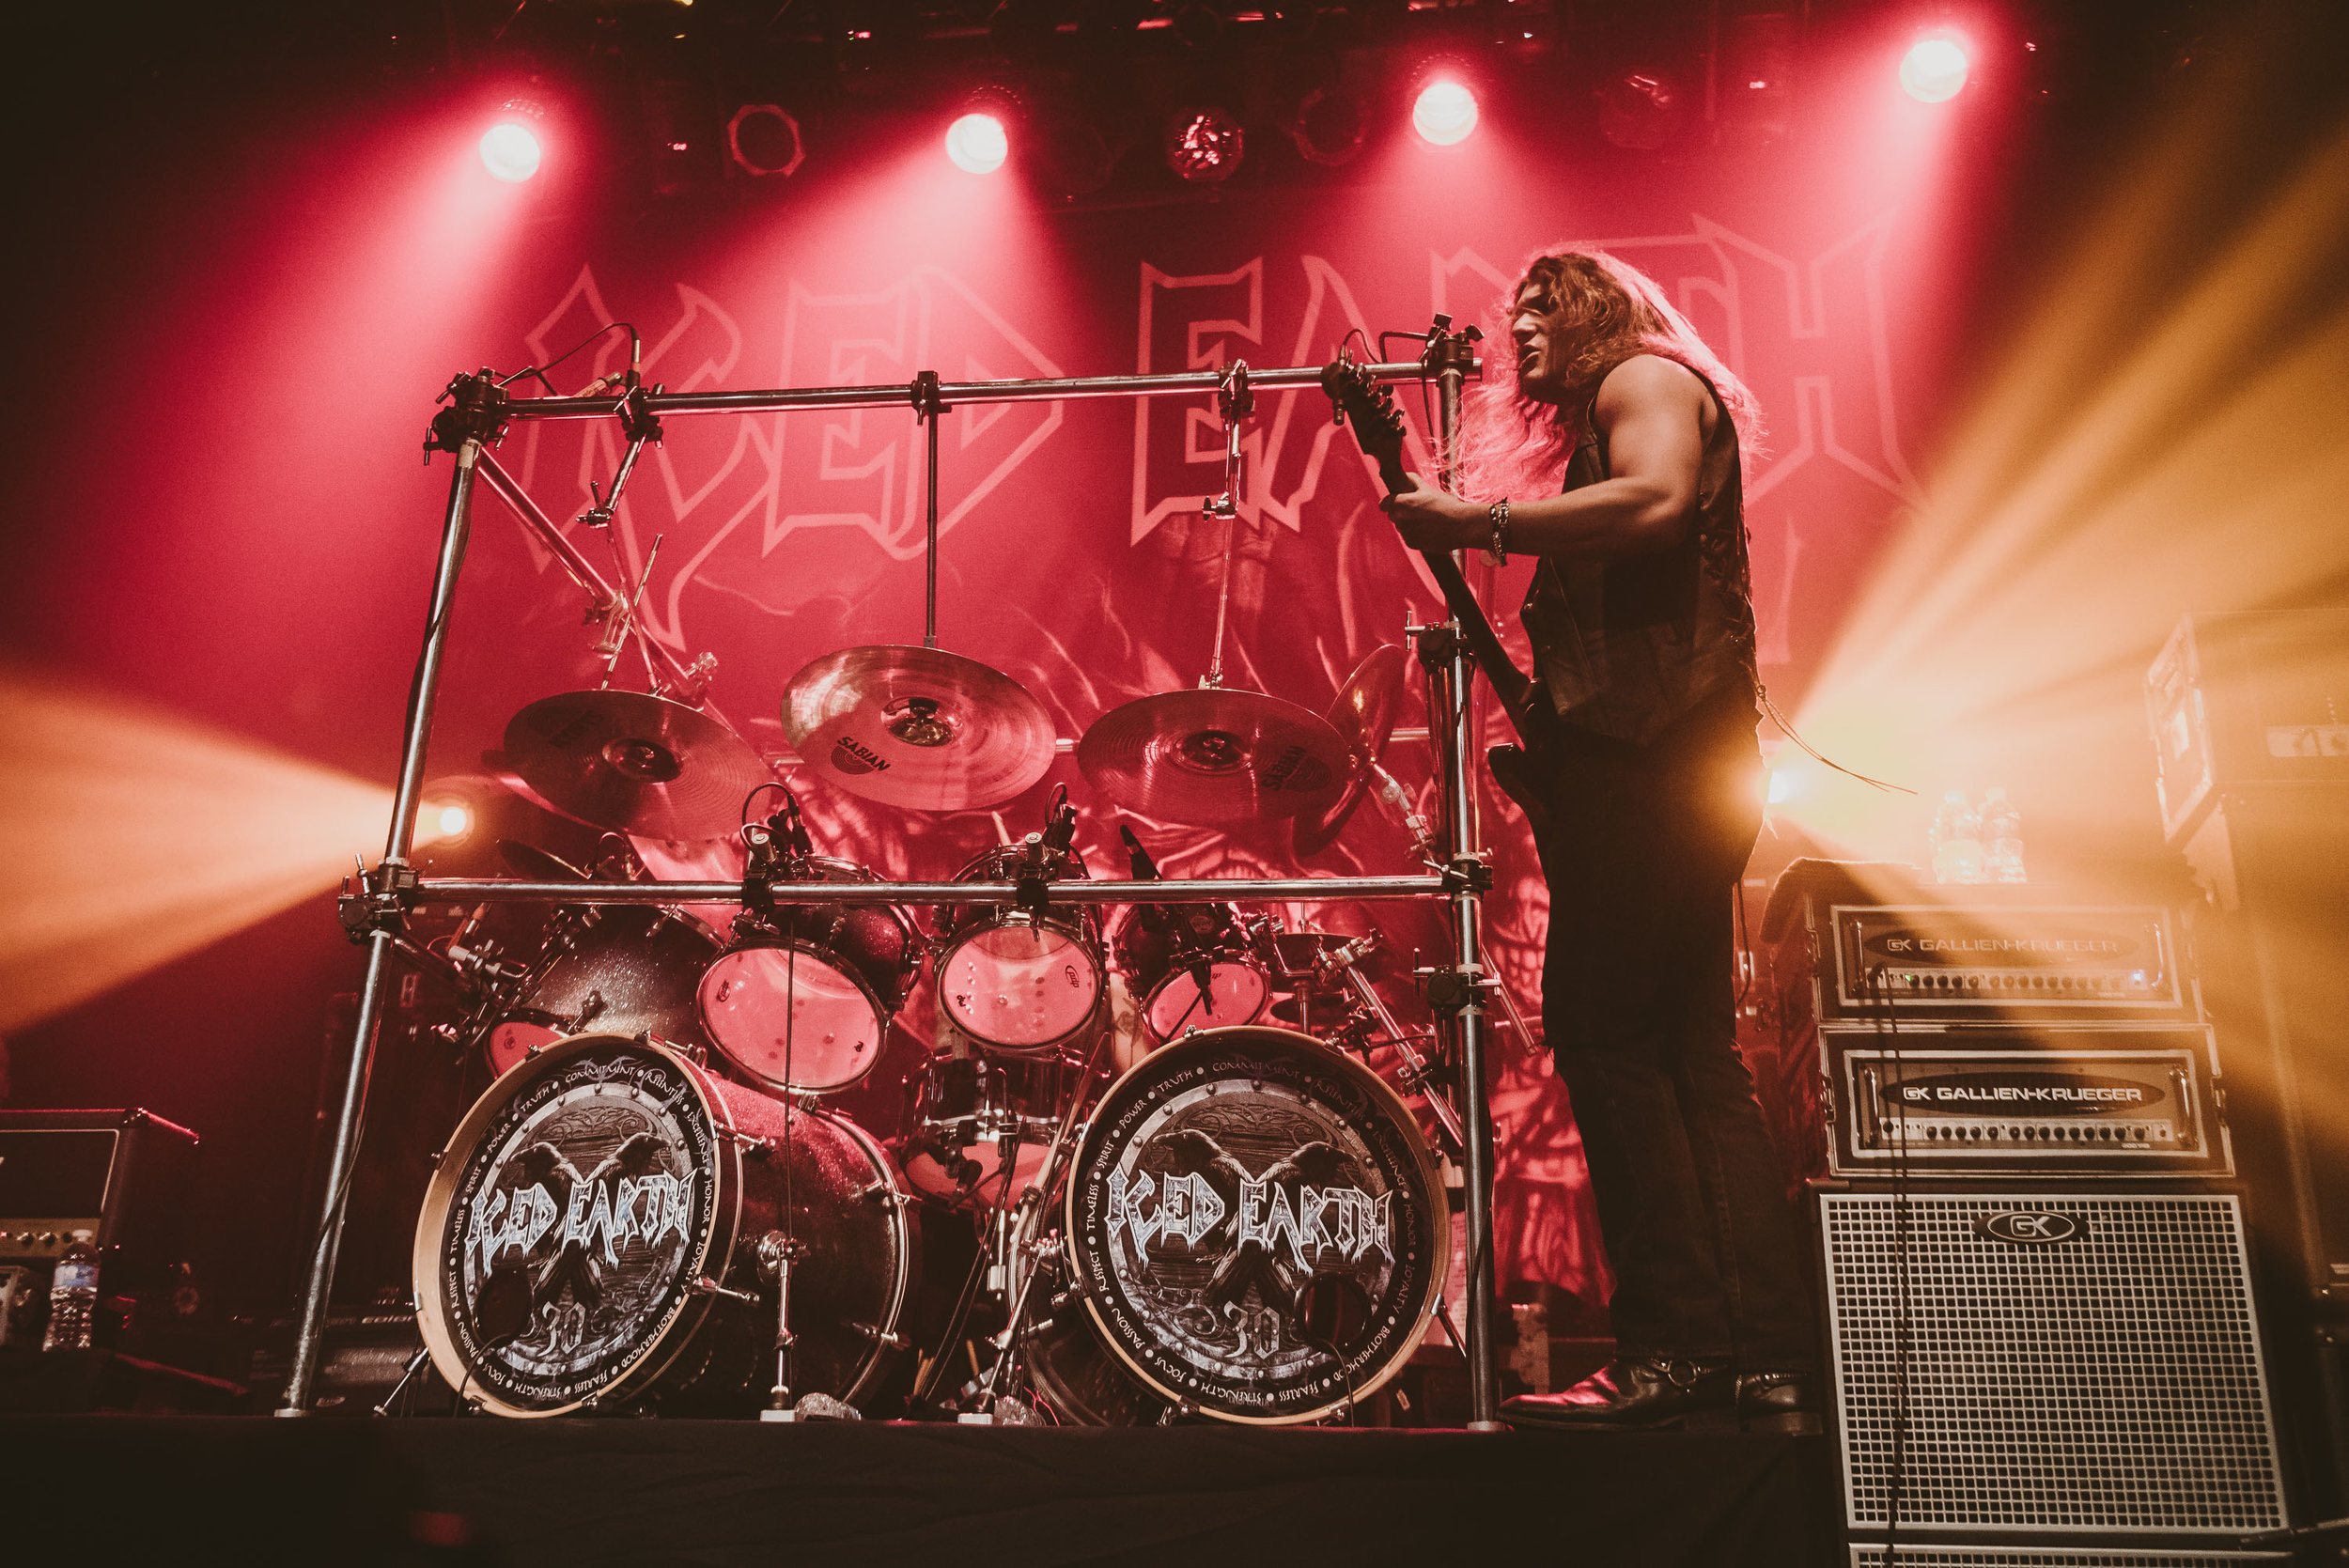 1_Iced_Earth-Rickshaw_Theatre-Timothy_Nguyen-20180304 (12 of 20).jpg